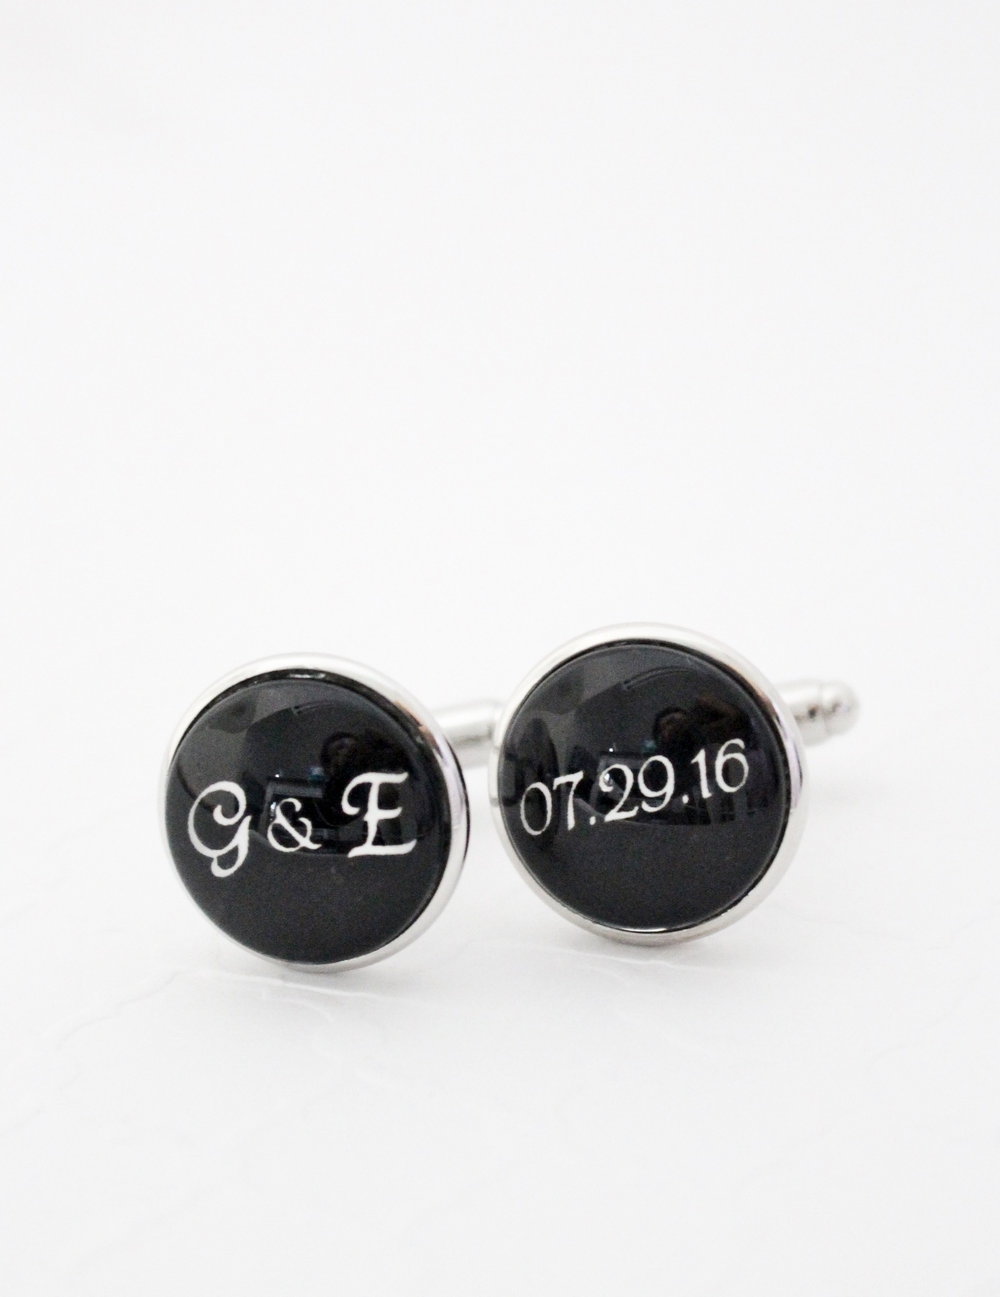 Anniversary Gift for Him Cufflinks with wedding date.jpg